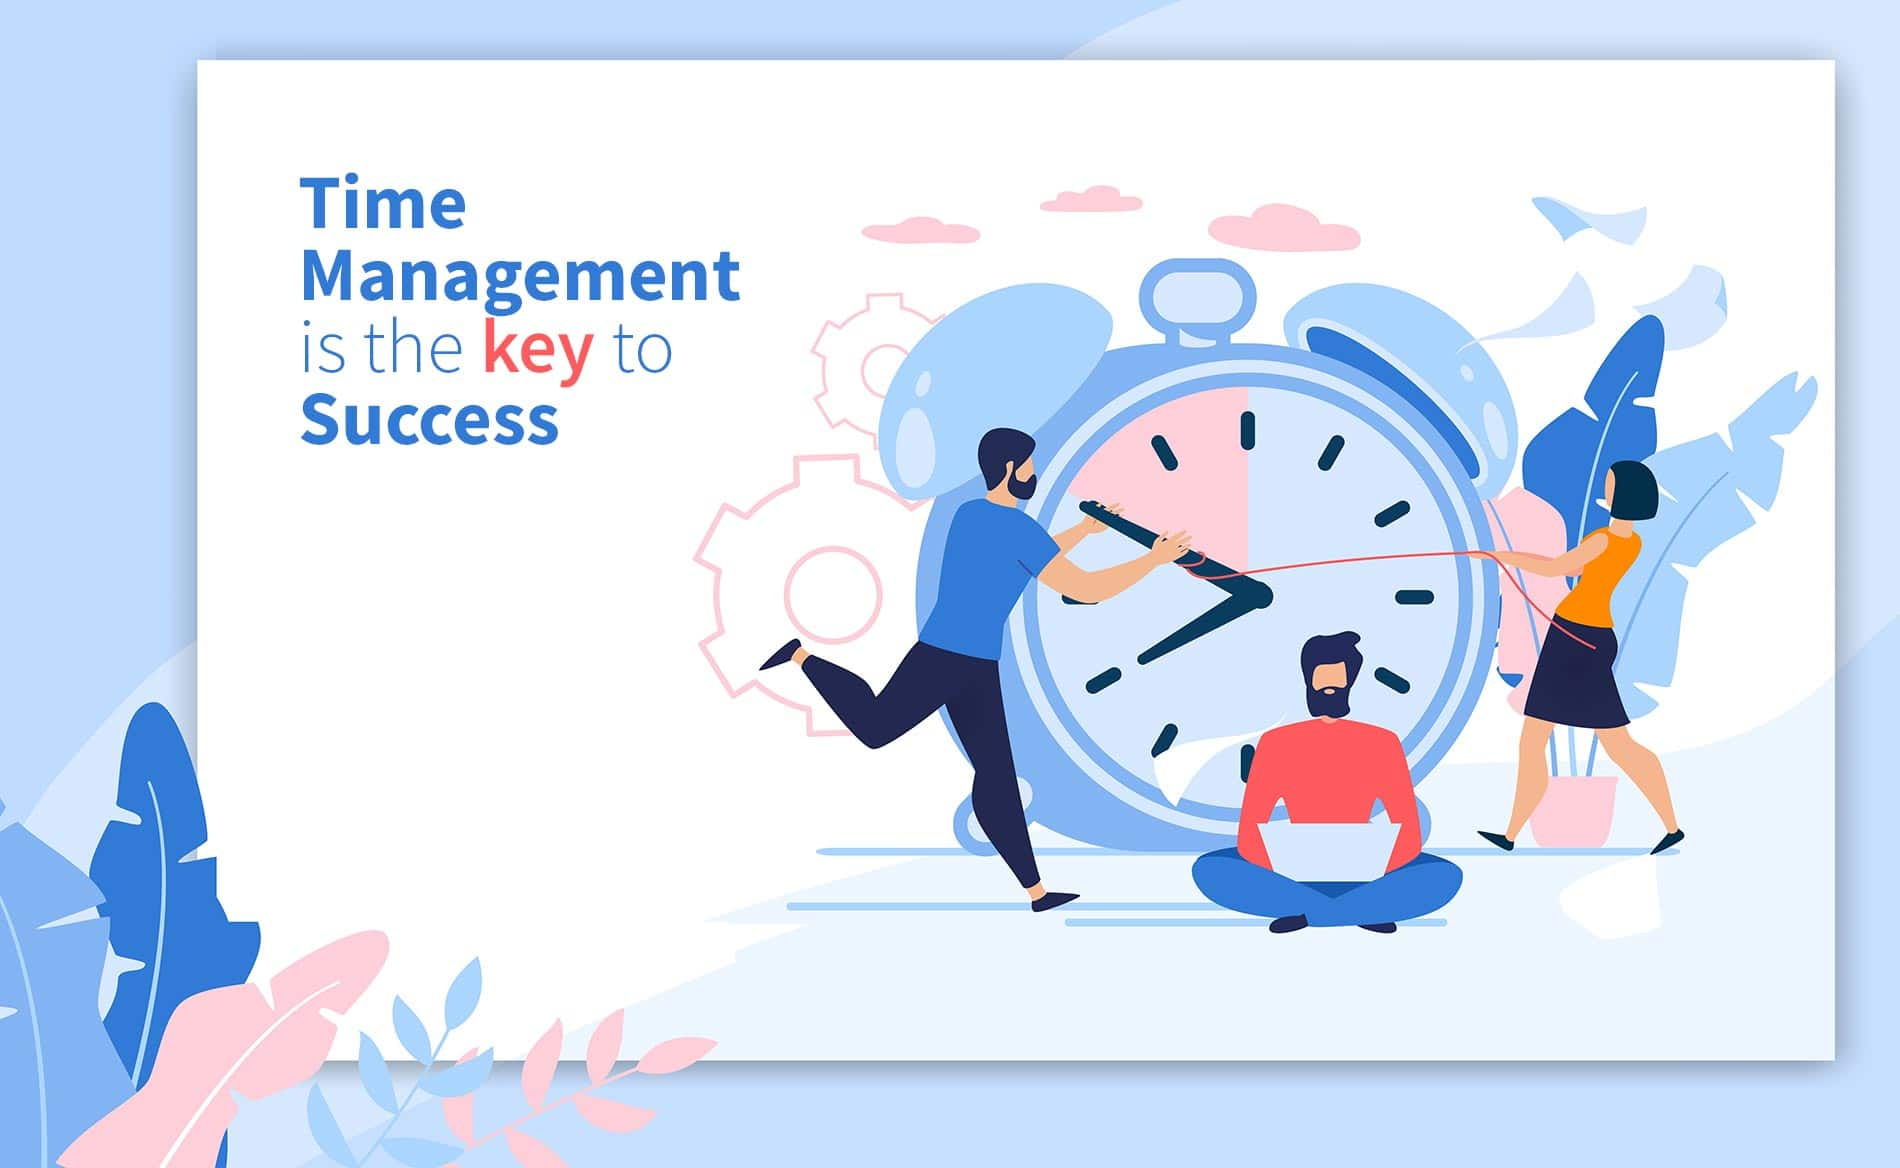 Time management is the key to success